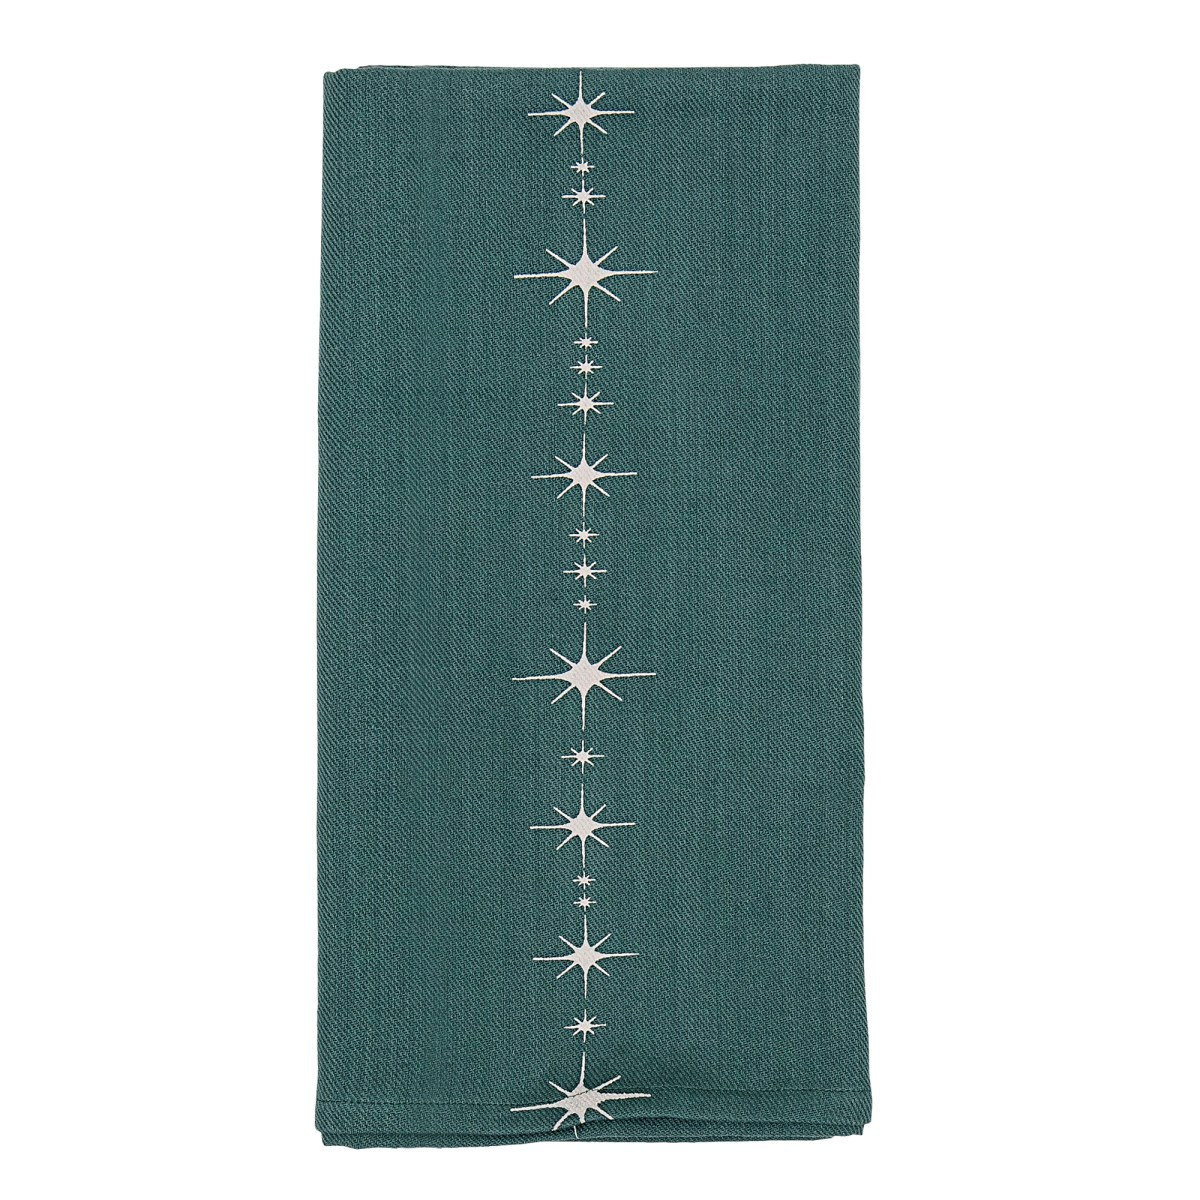 Středový pás Green Table Runner_2